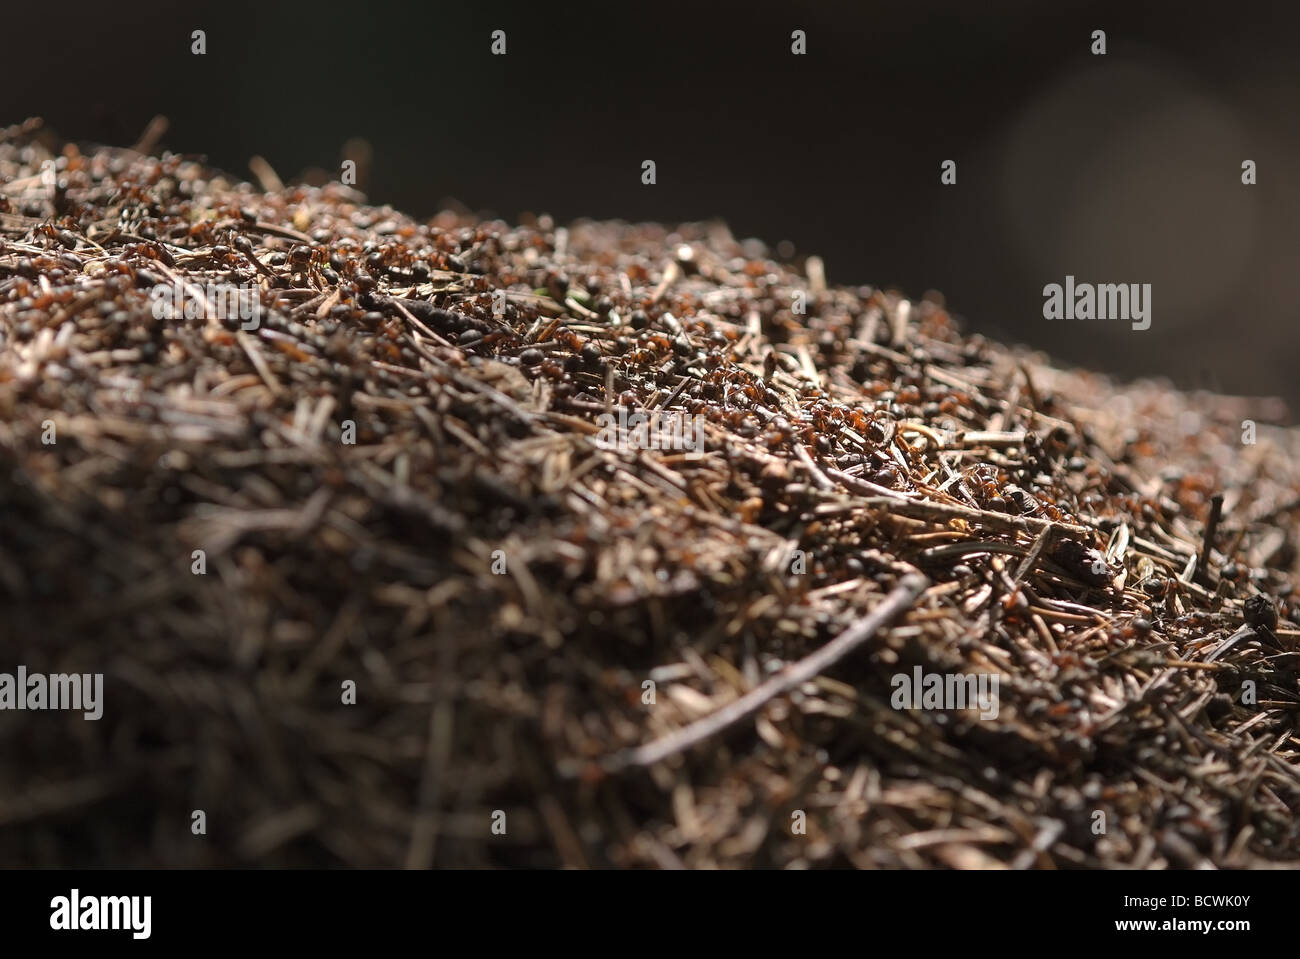 The top of ant hill - Stock Image